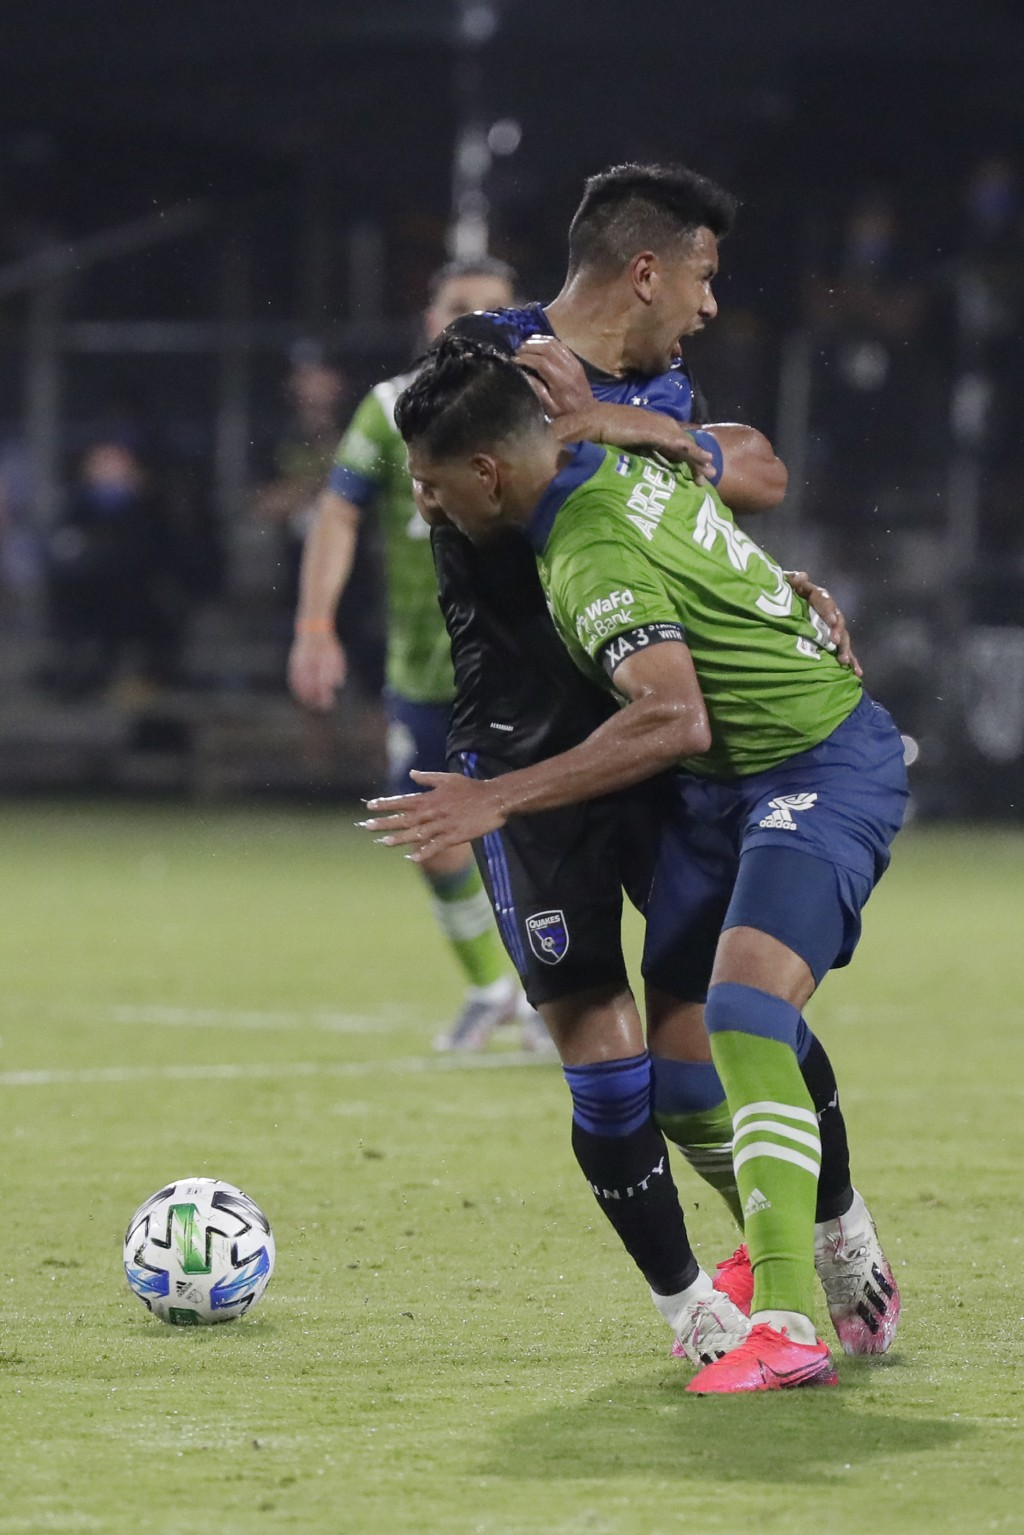 San Jose Earthquakes forward Andres Rios, rear, and Seattle Sounders defender Xavier Arreaga (3) collide as they battle for the ball during the second...